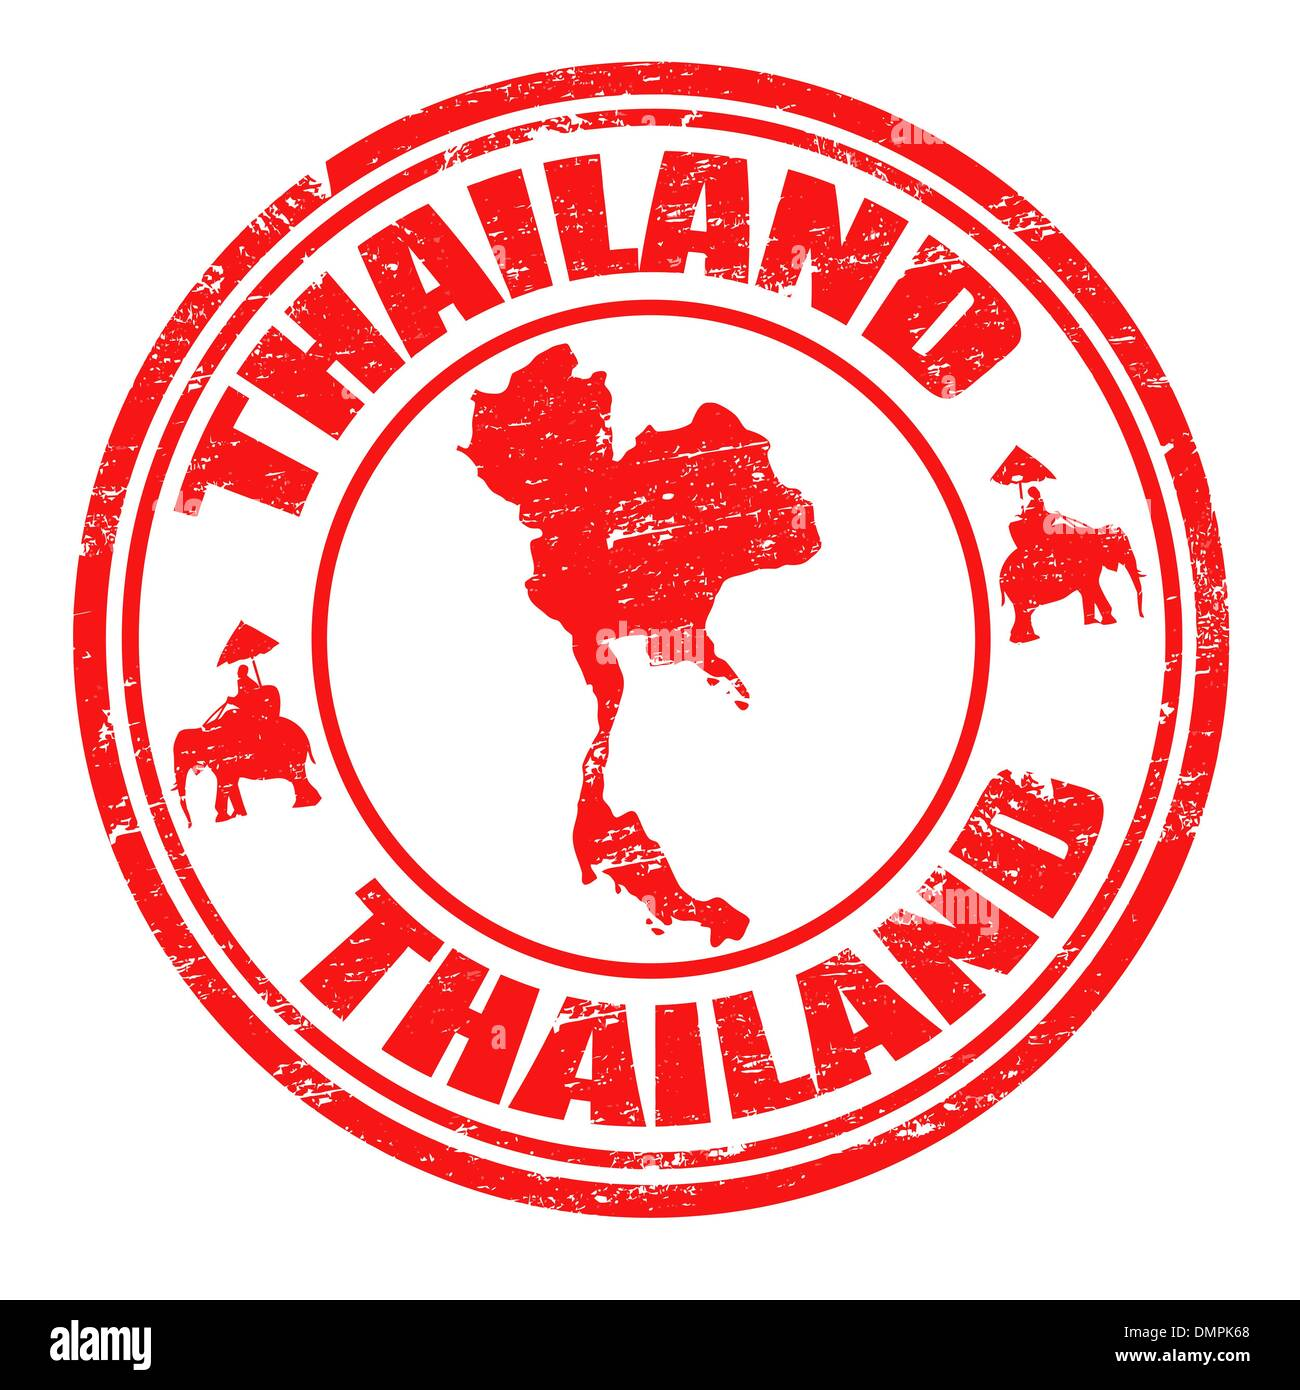 Thailand stamp - Stock Image